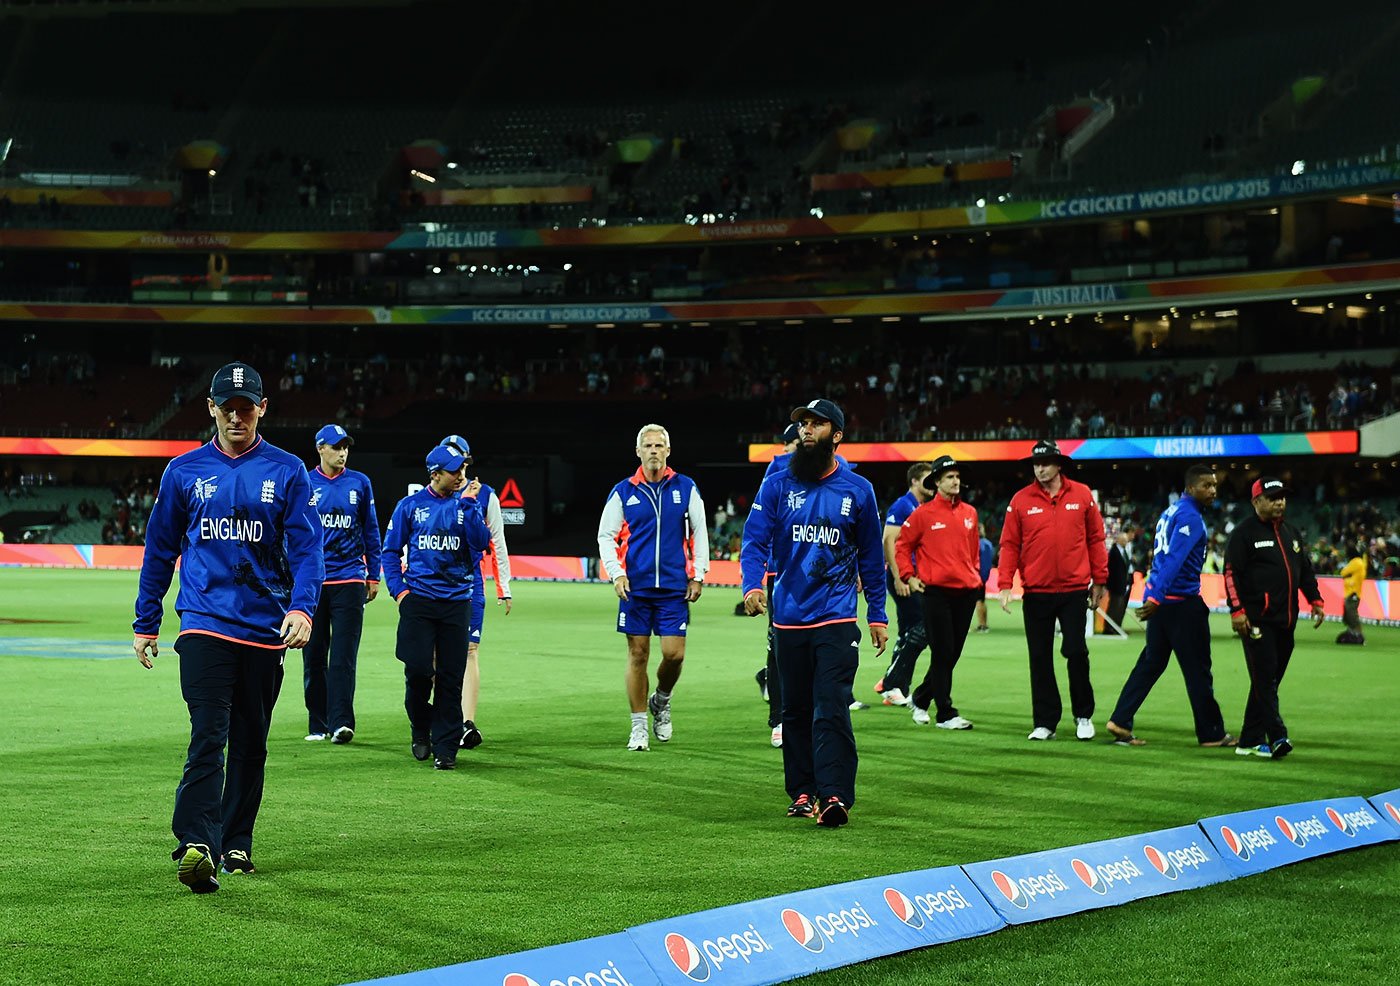 I get knocked down but I get up again: Morgan and his England team-mates walk off the field after their devastating exit from the 2015 World Cup